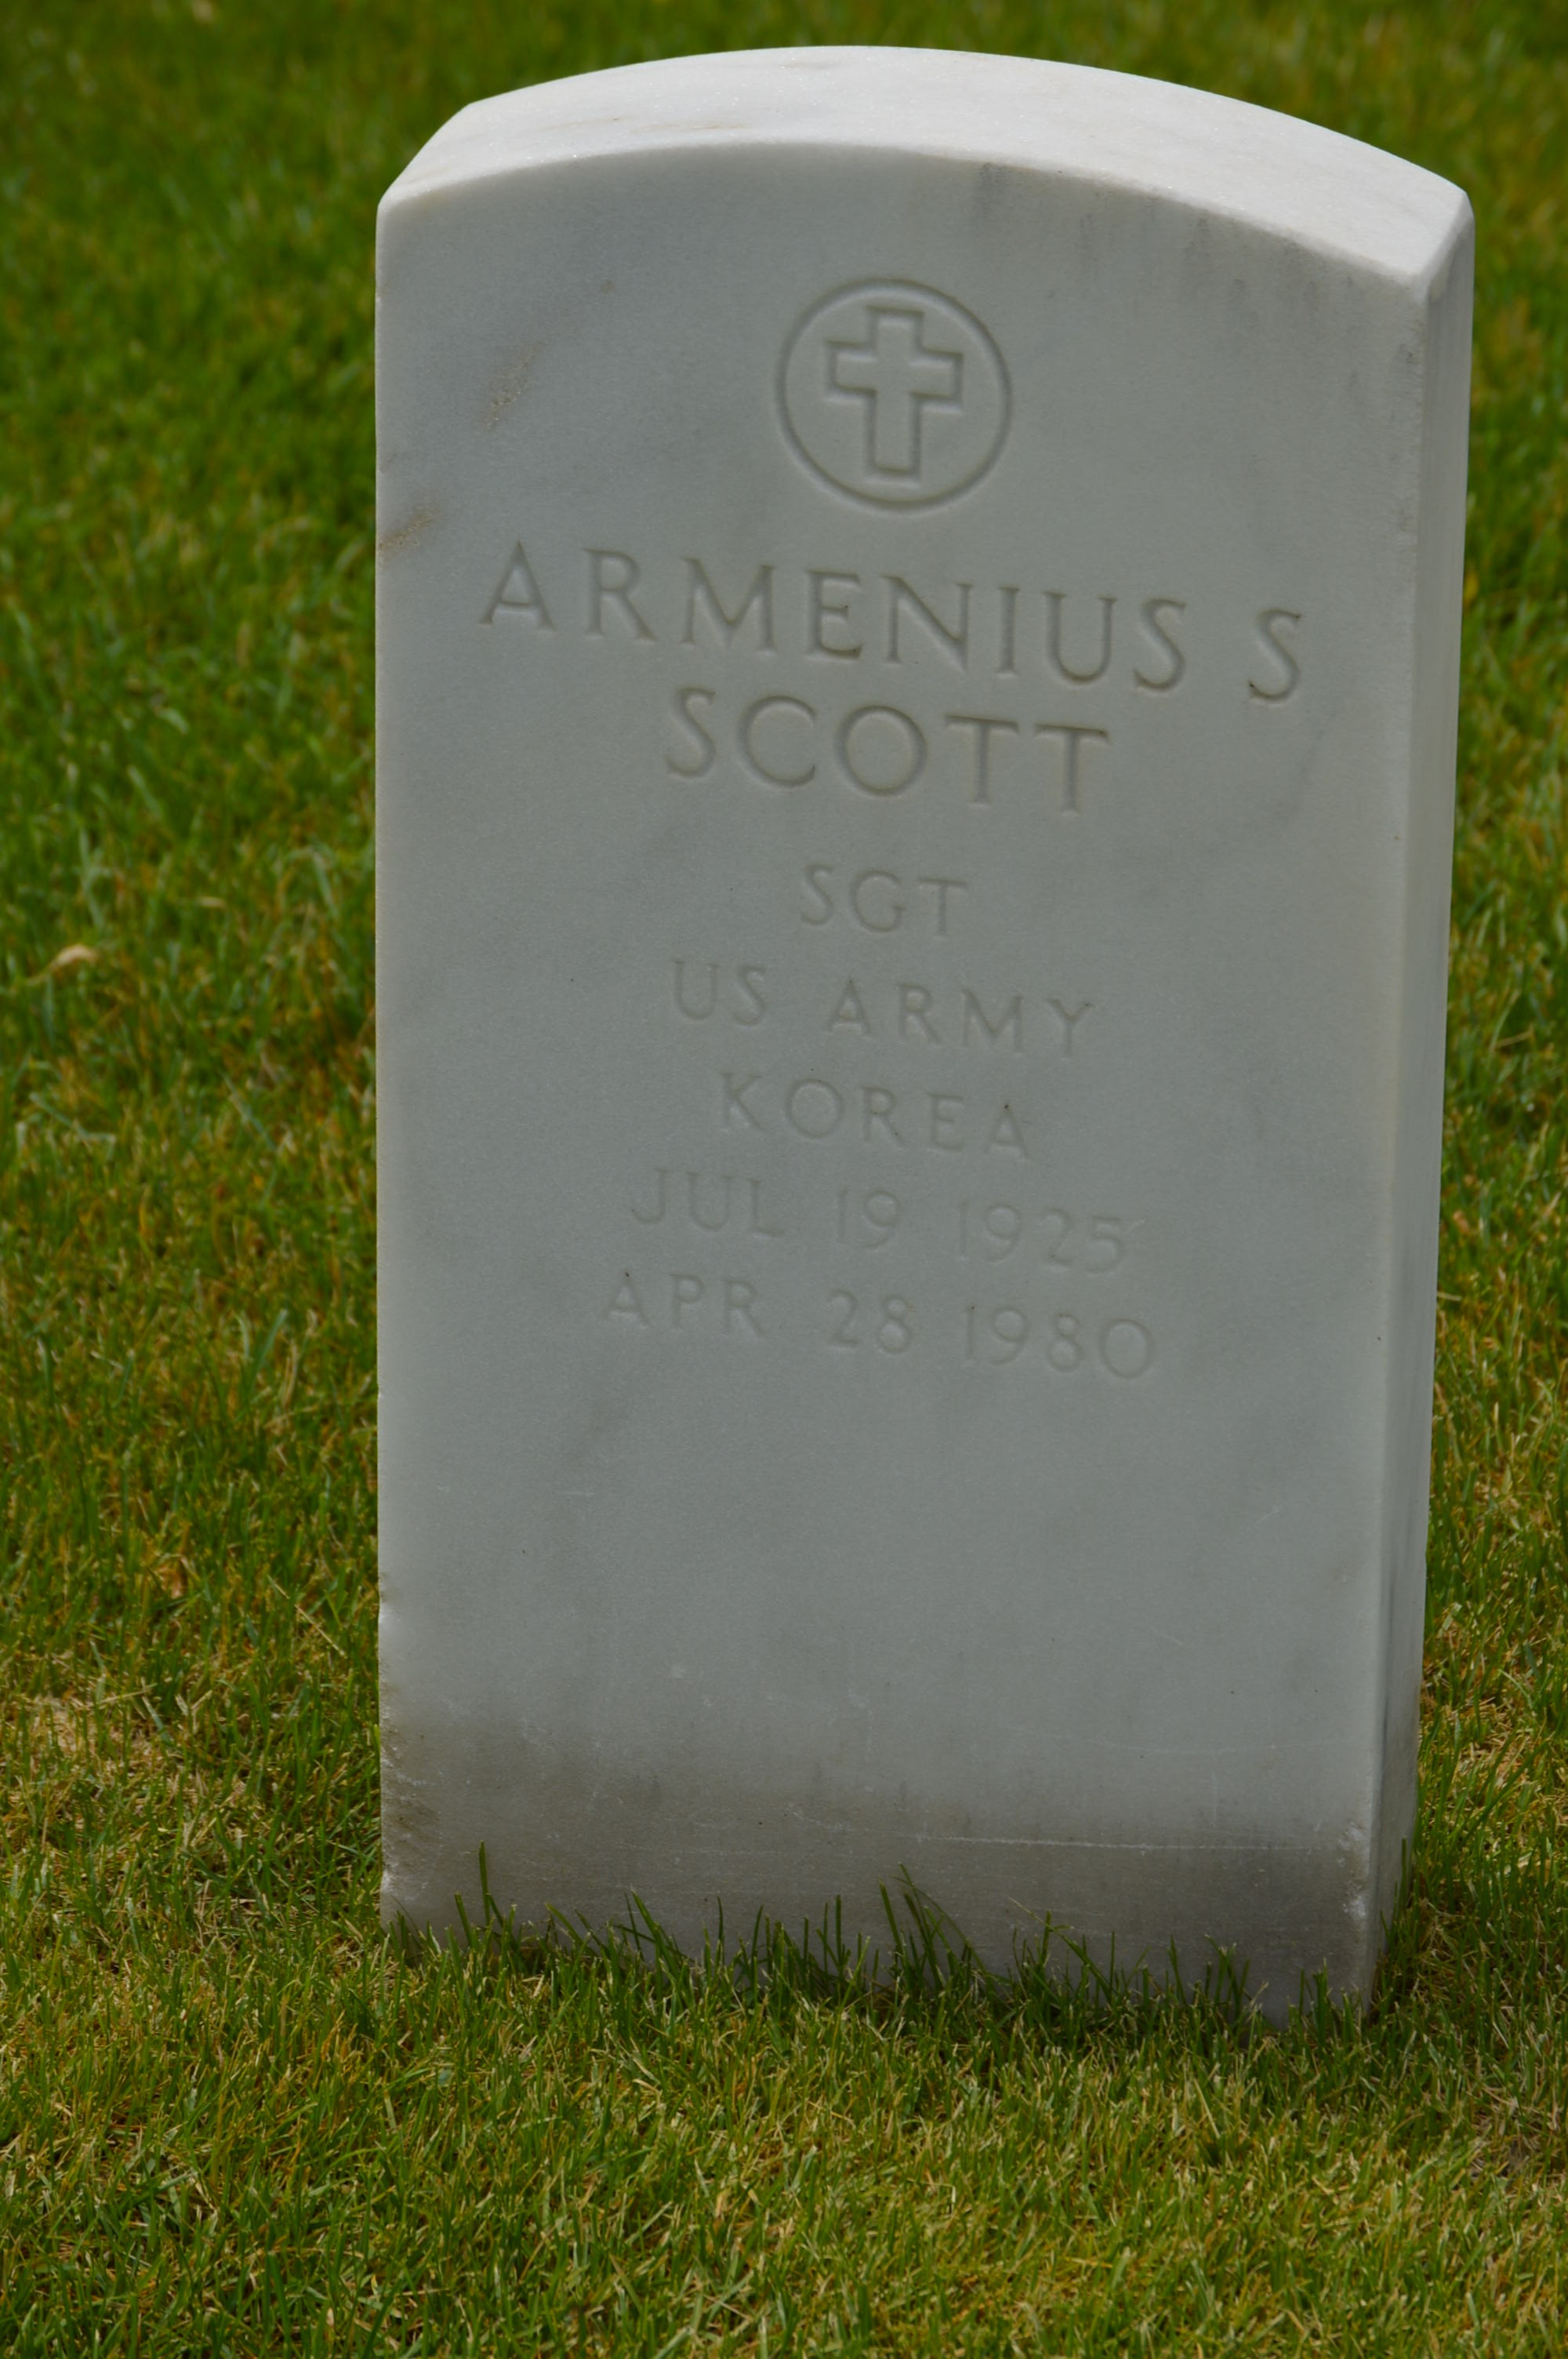 Armenius S Scott